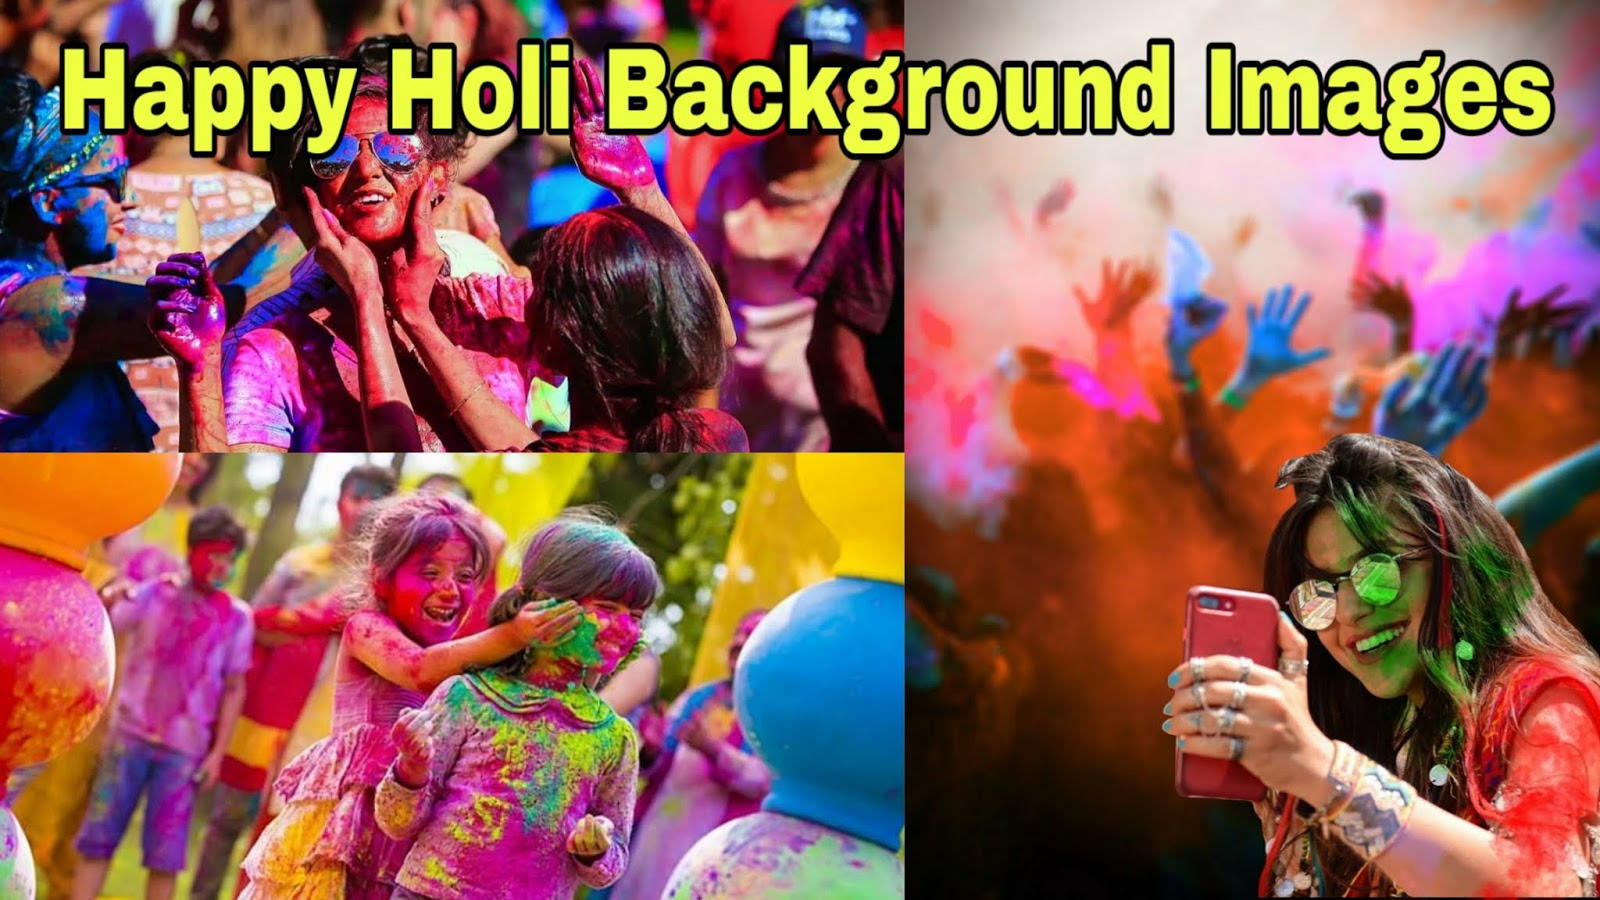 100+ Happy Holi Images Hd Background For Editing | Holi Background Images 2020